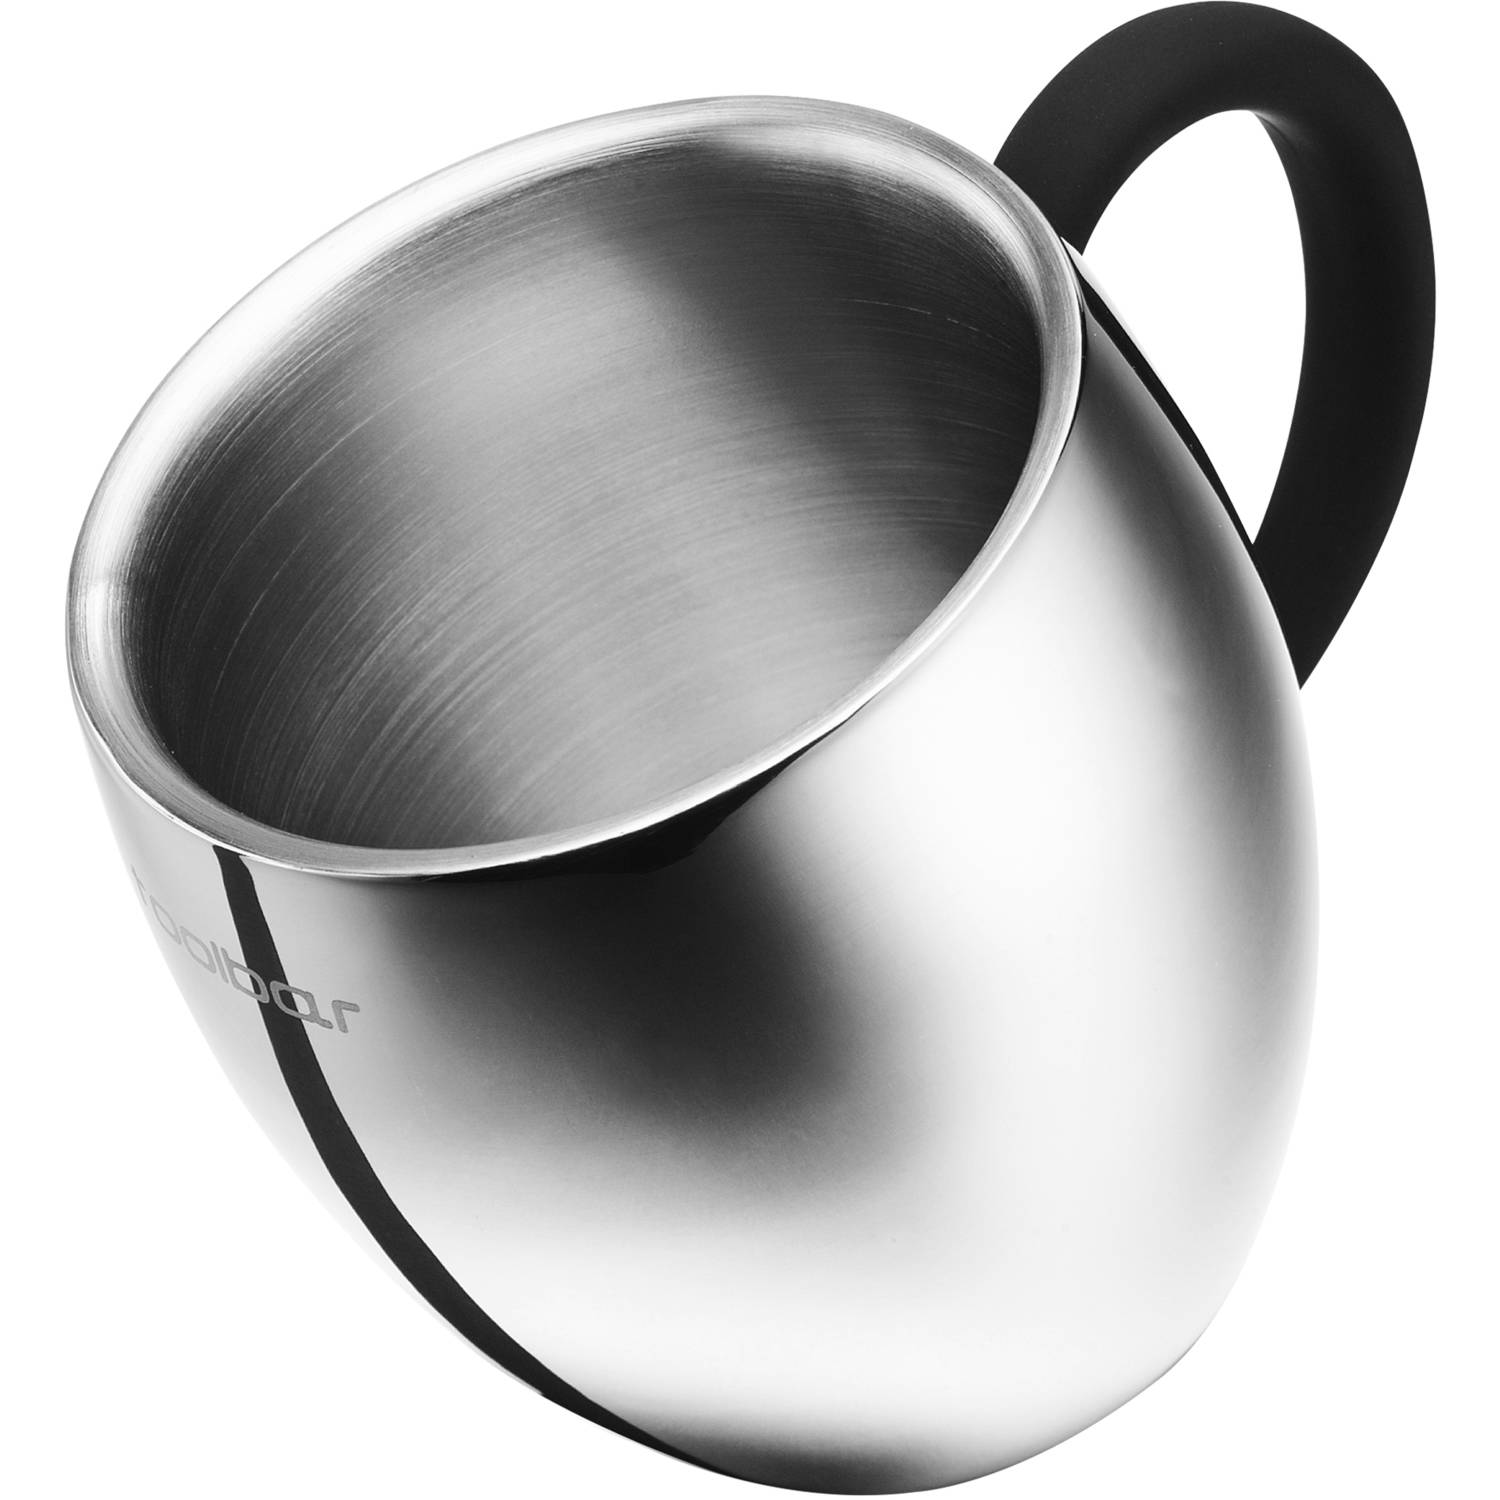 Metier Metal metier atelier 10 oz double wall insulated stainless steel coffee